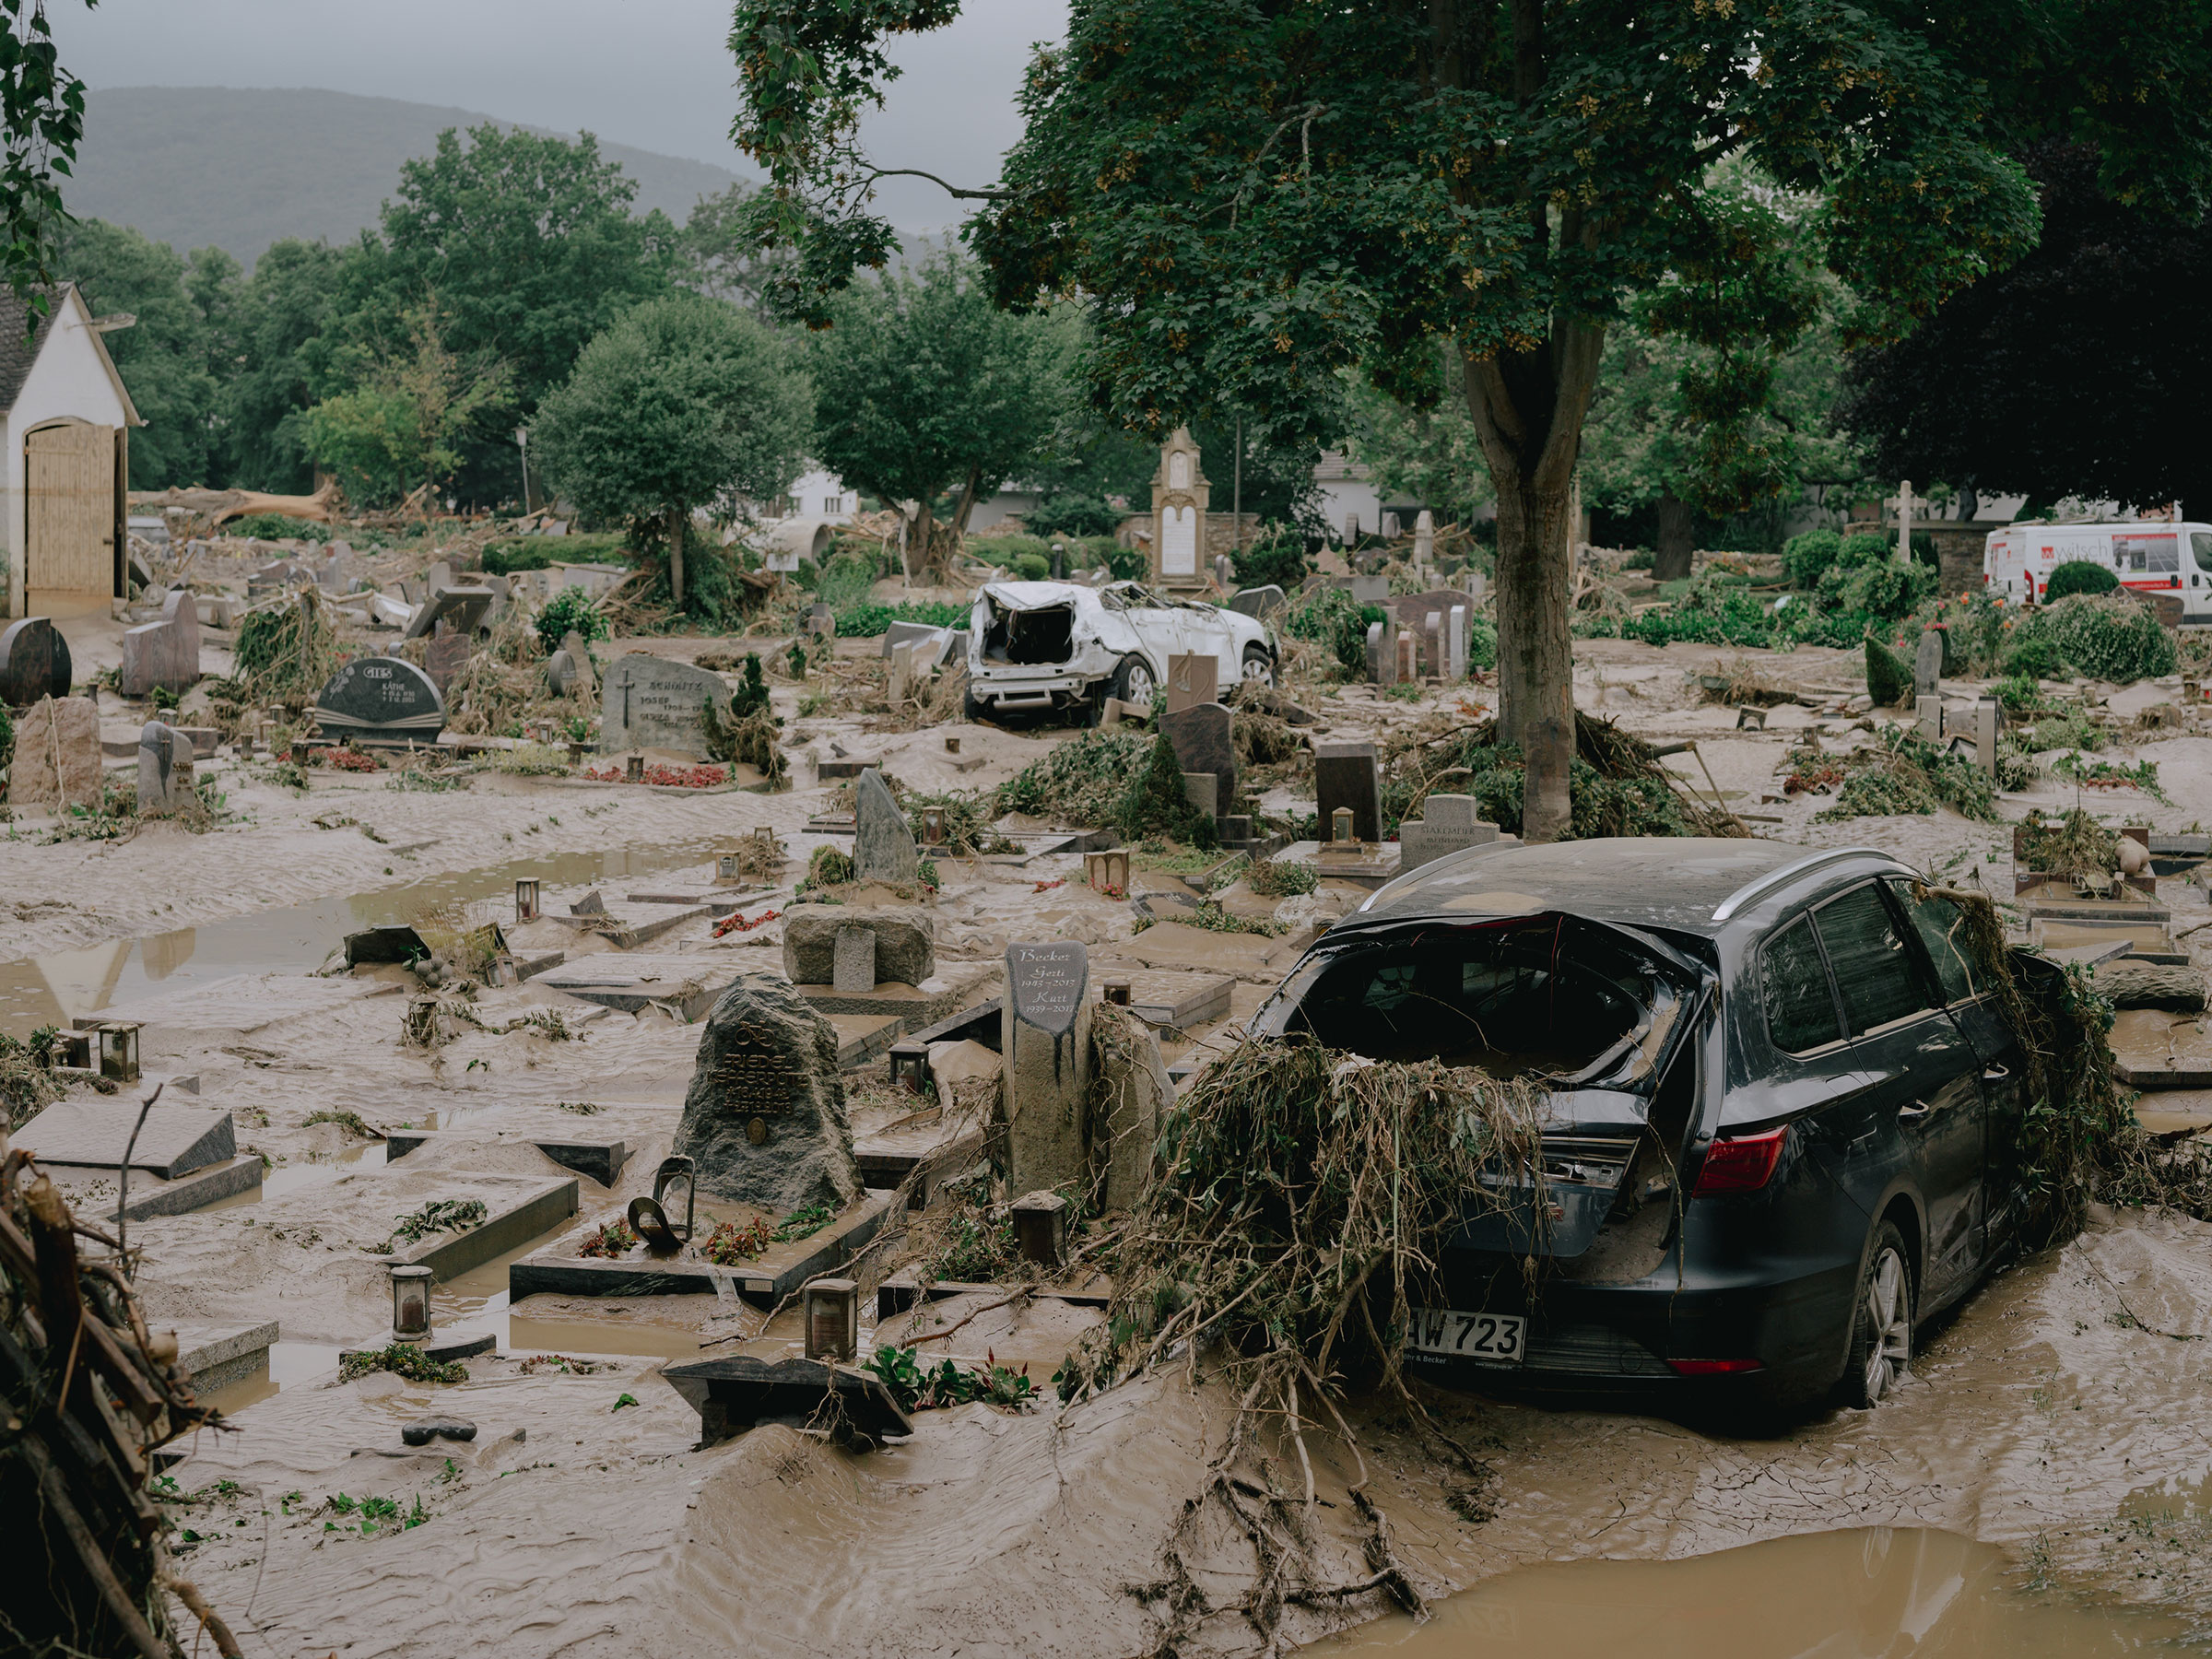 A flooded cemetery in Ahrweiler, Germany, on July 15.